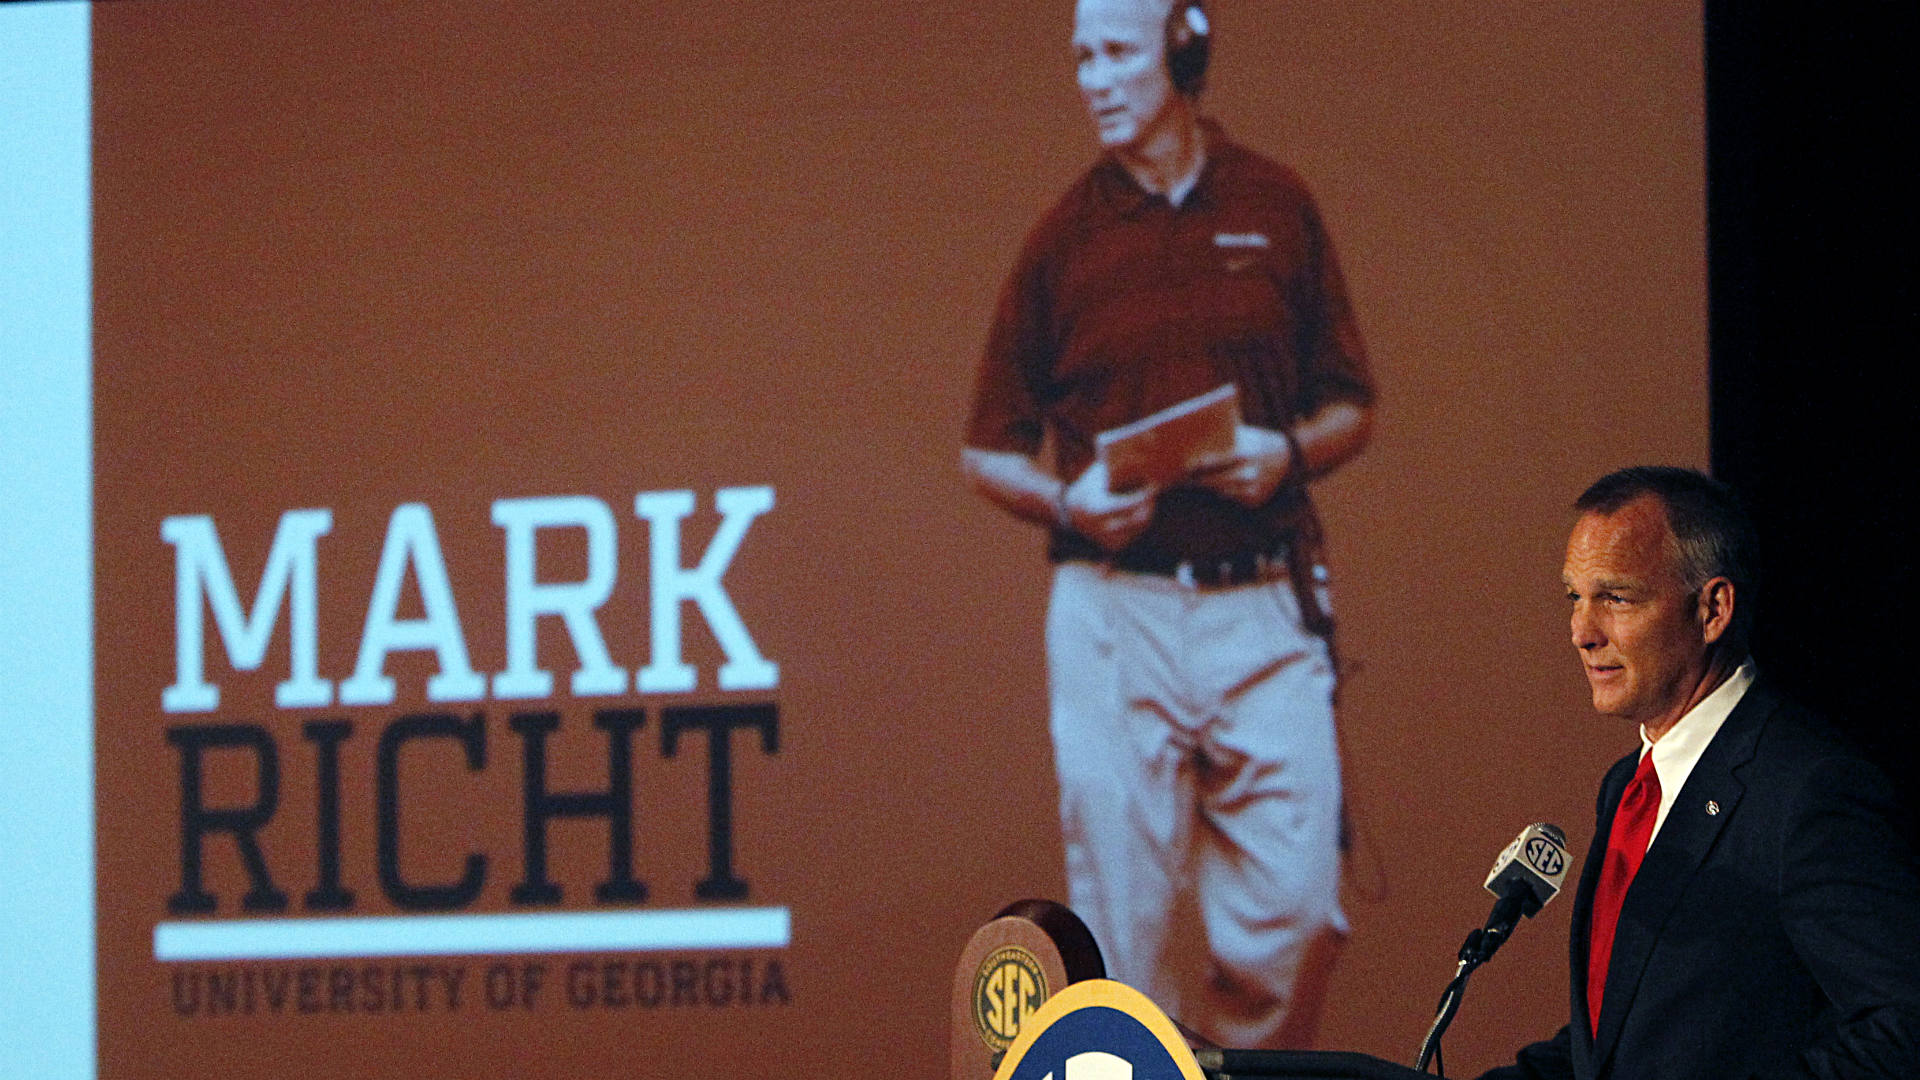 SEC Media Days: Dates, schedule, reasons to watch